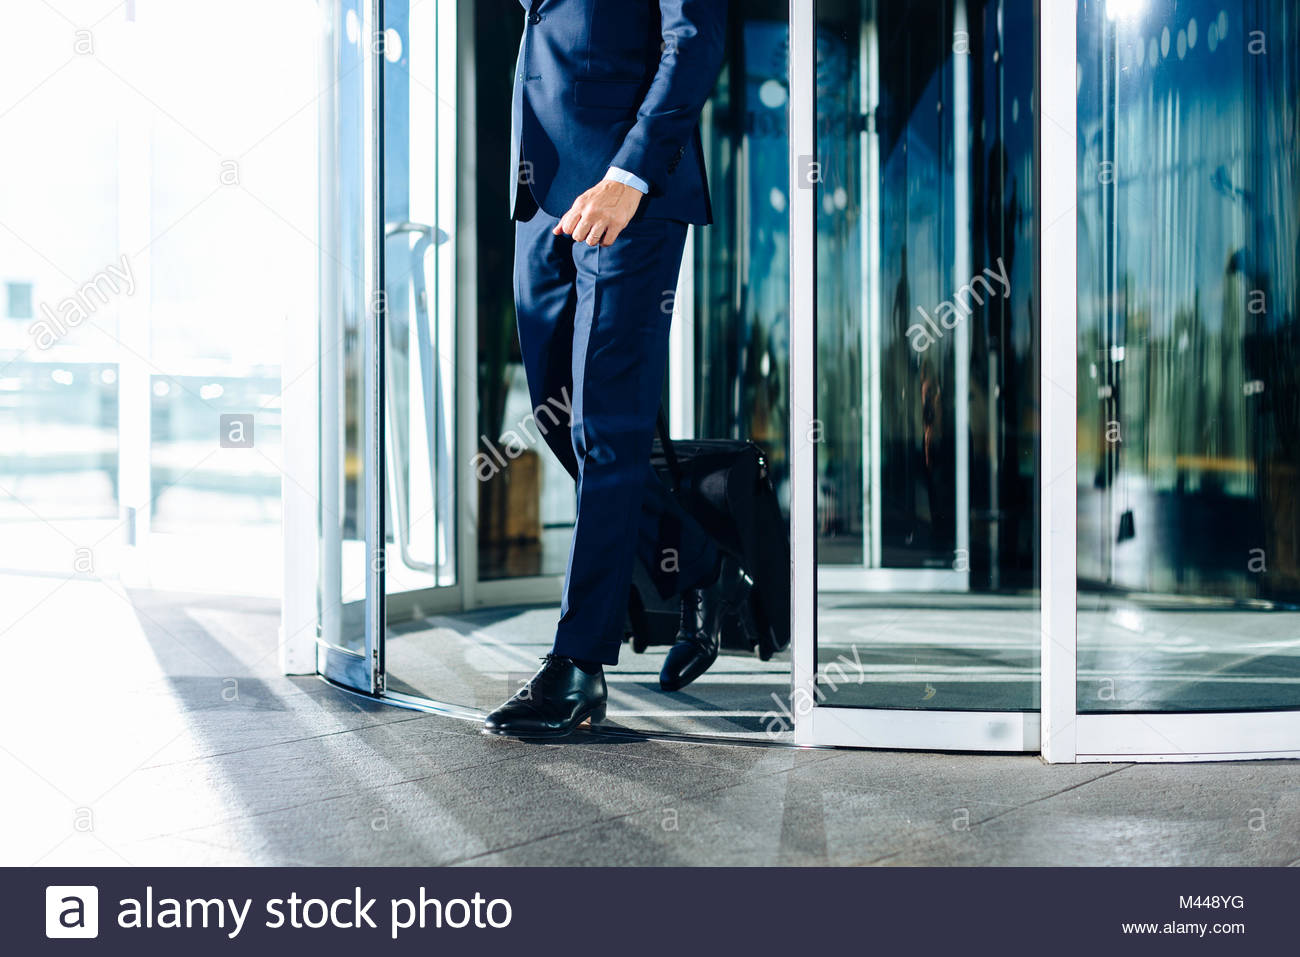 Businessman with wheeled luggage exiting revolving doors of building - Stock Image